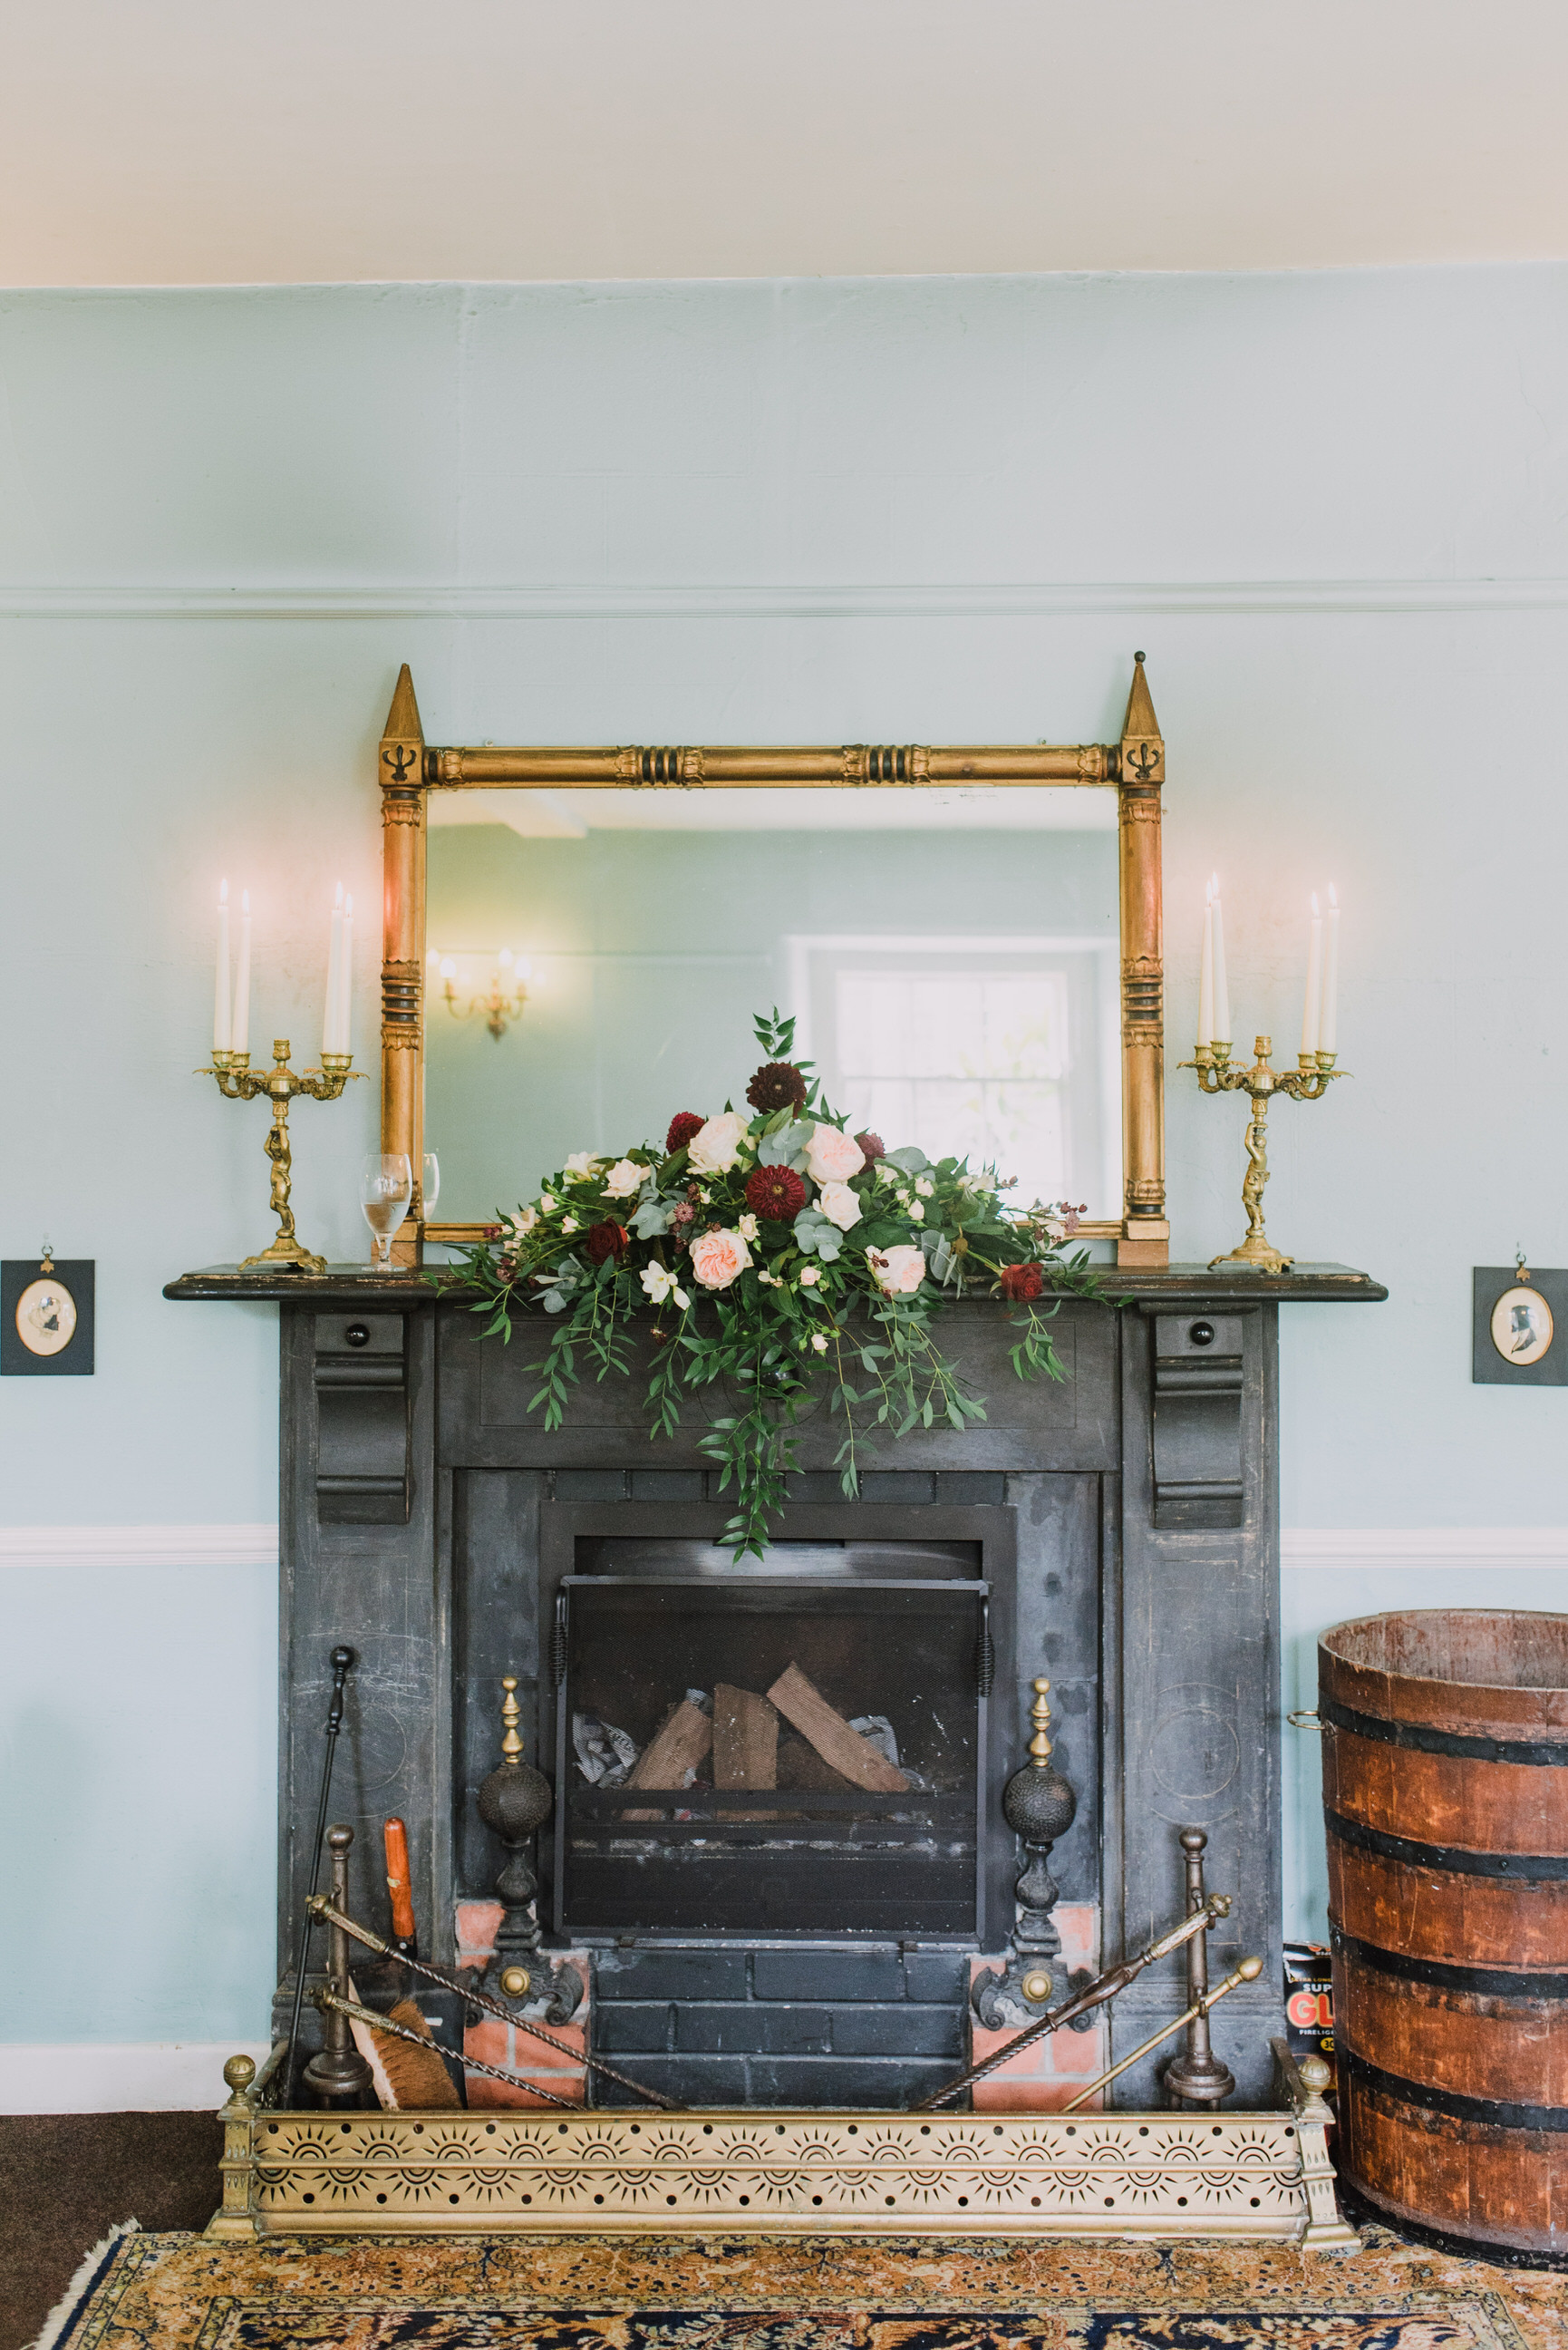 lissanoure castle wedding, northern ireland wedding photographer, romantic northern irish wedding venue, castle wedding ireland, natural wedding photography ni (25).jpg